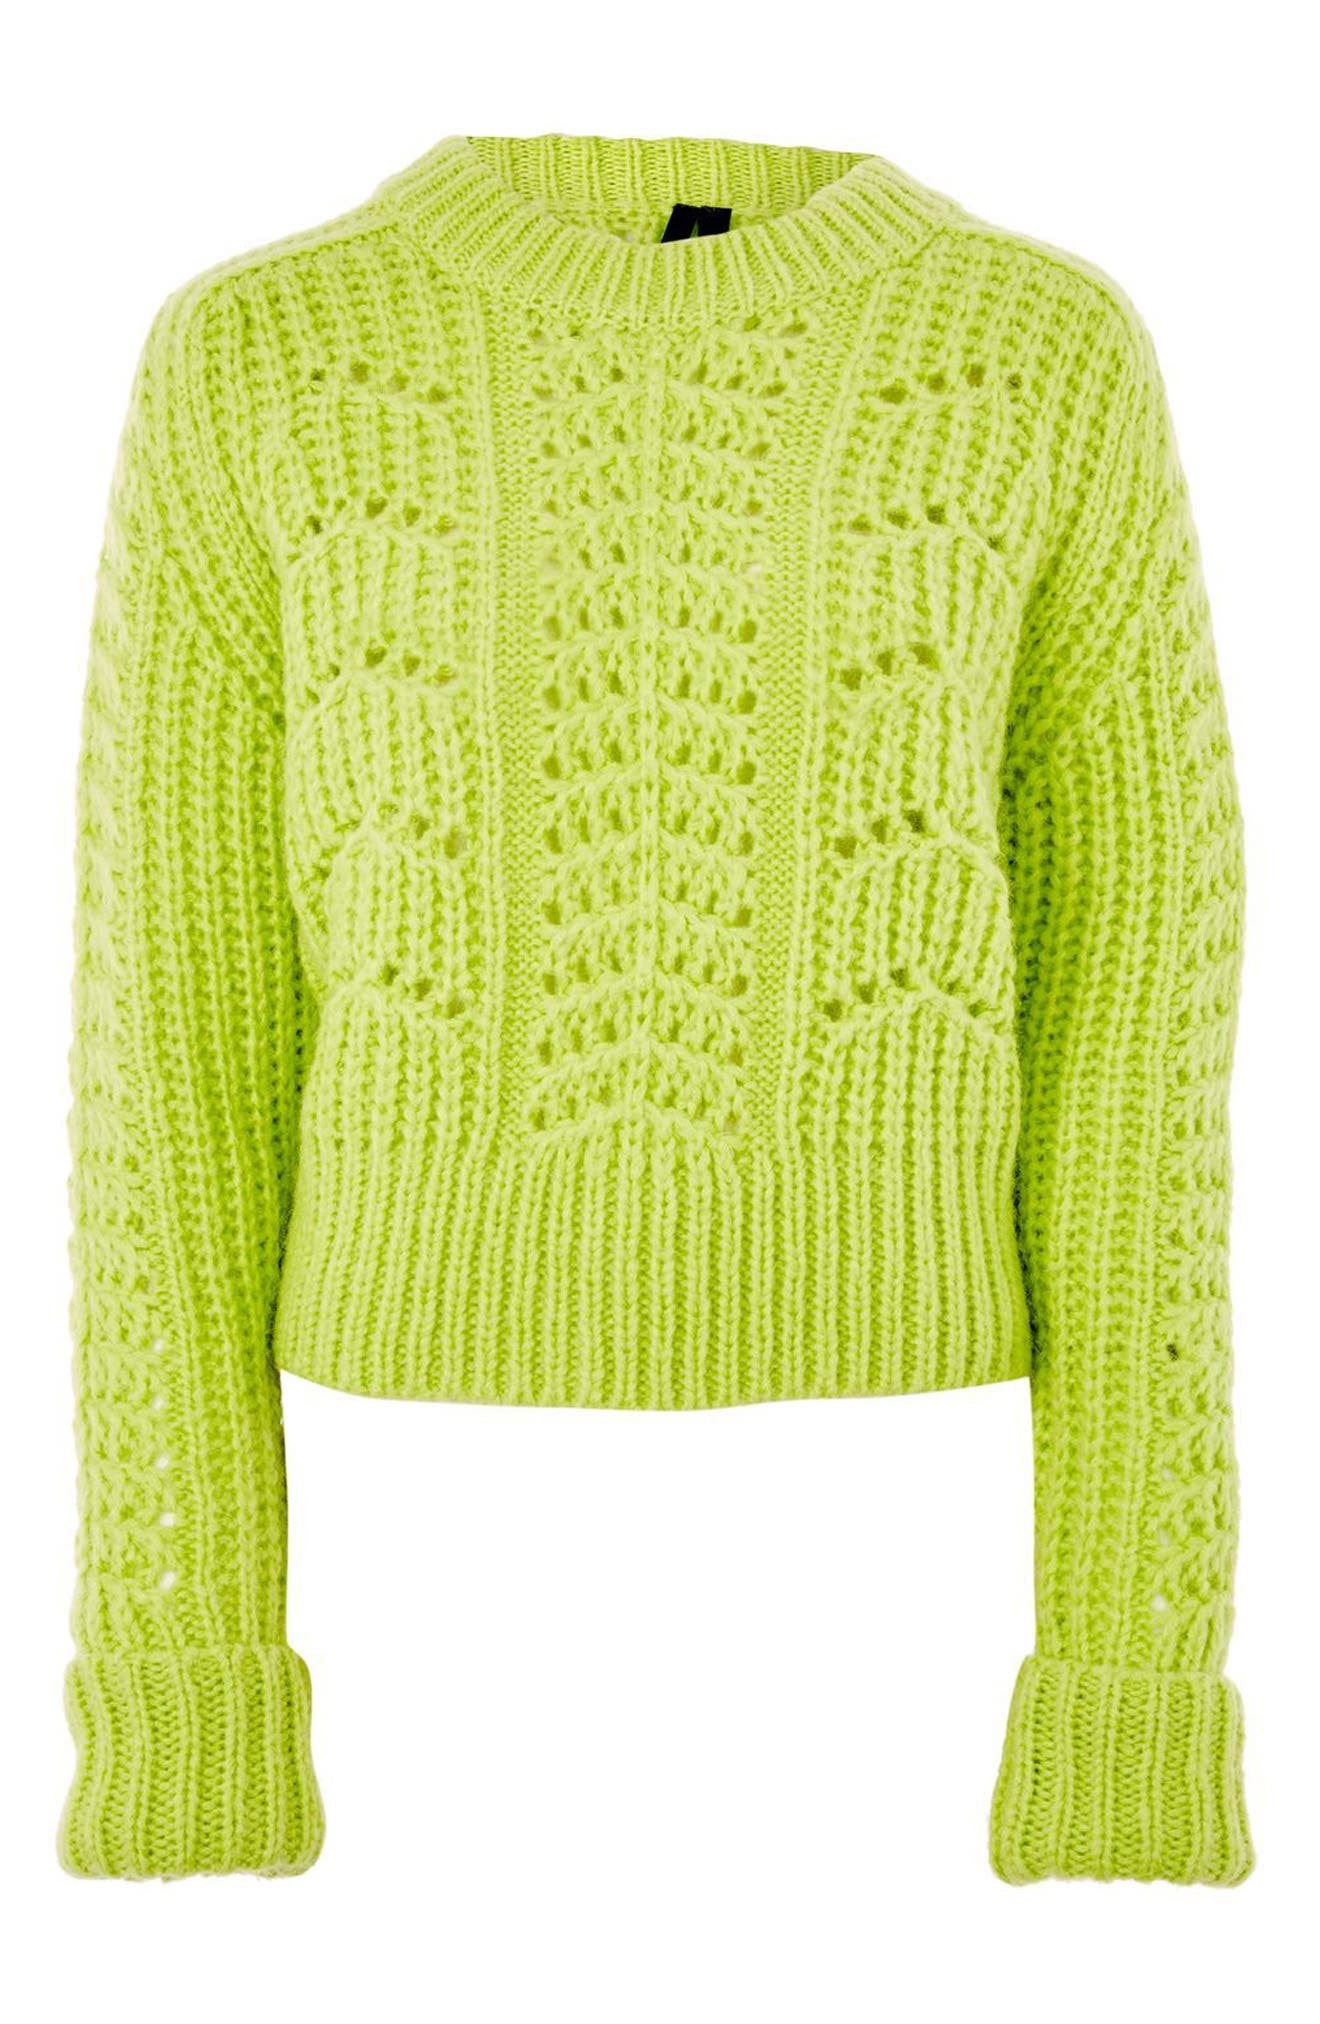 Cable Knit Sweater,                             Main thumbnail 1, color,                             Bright Green